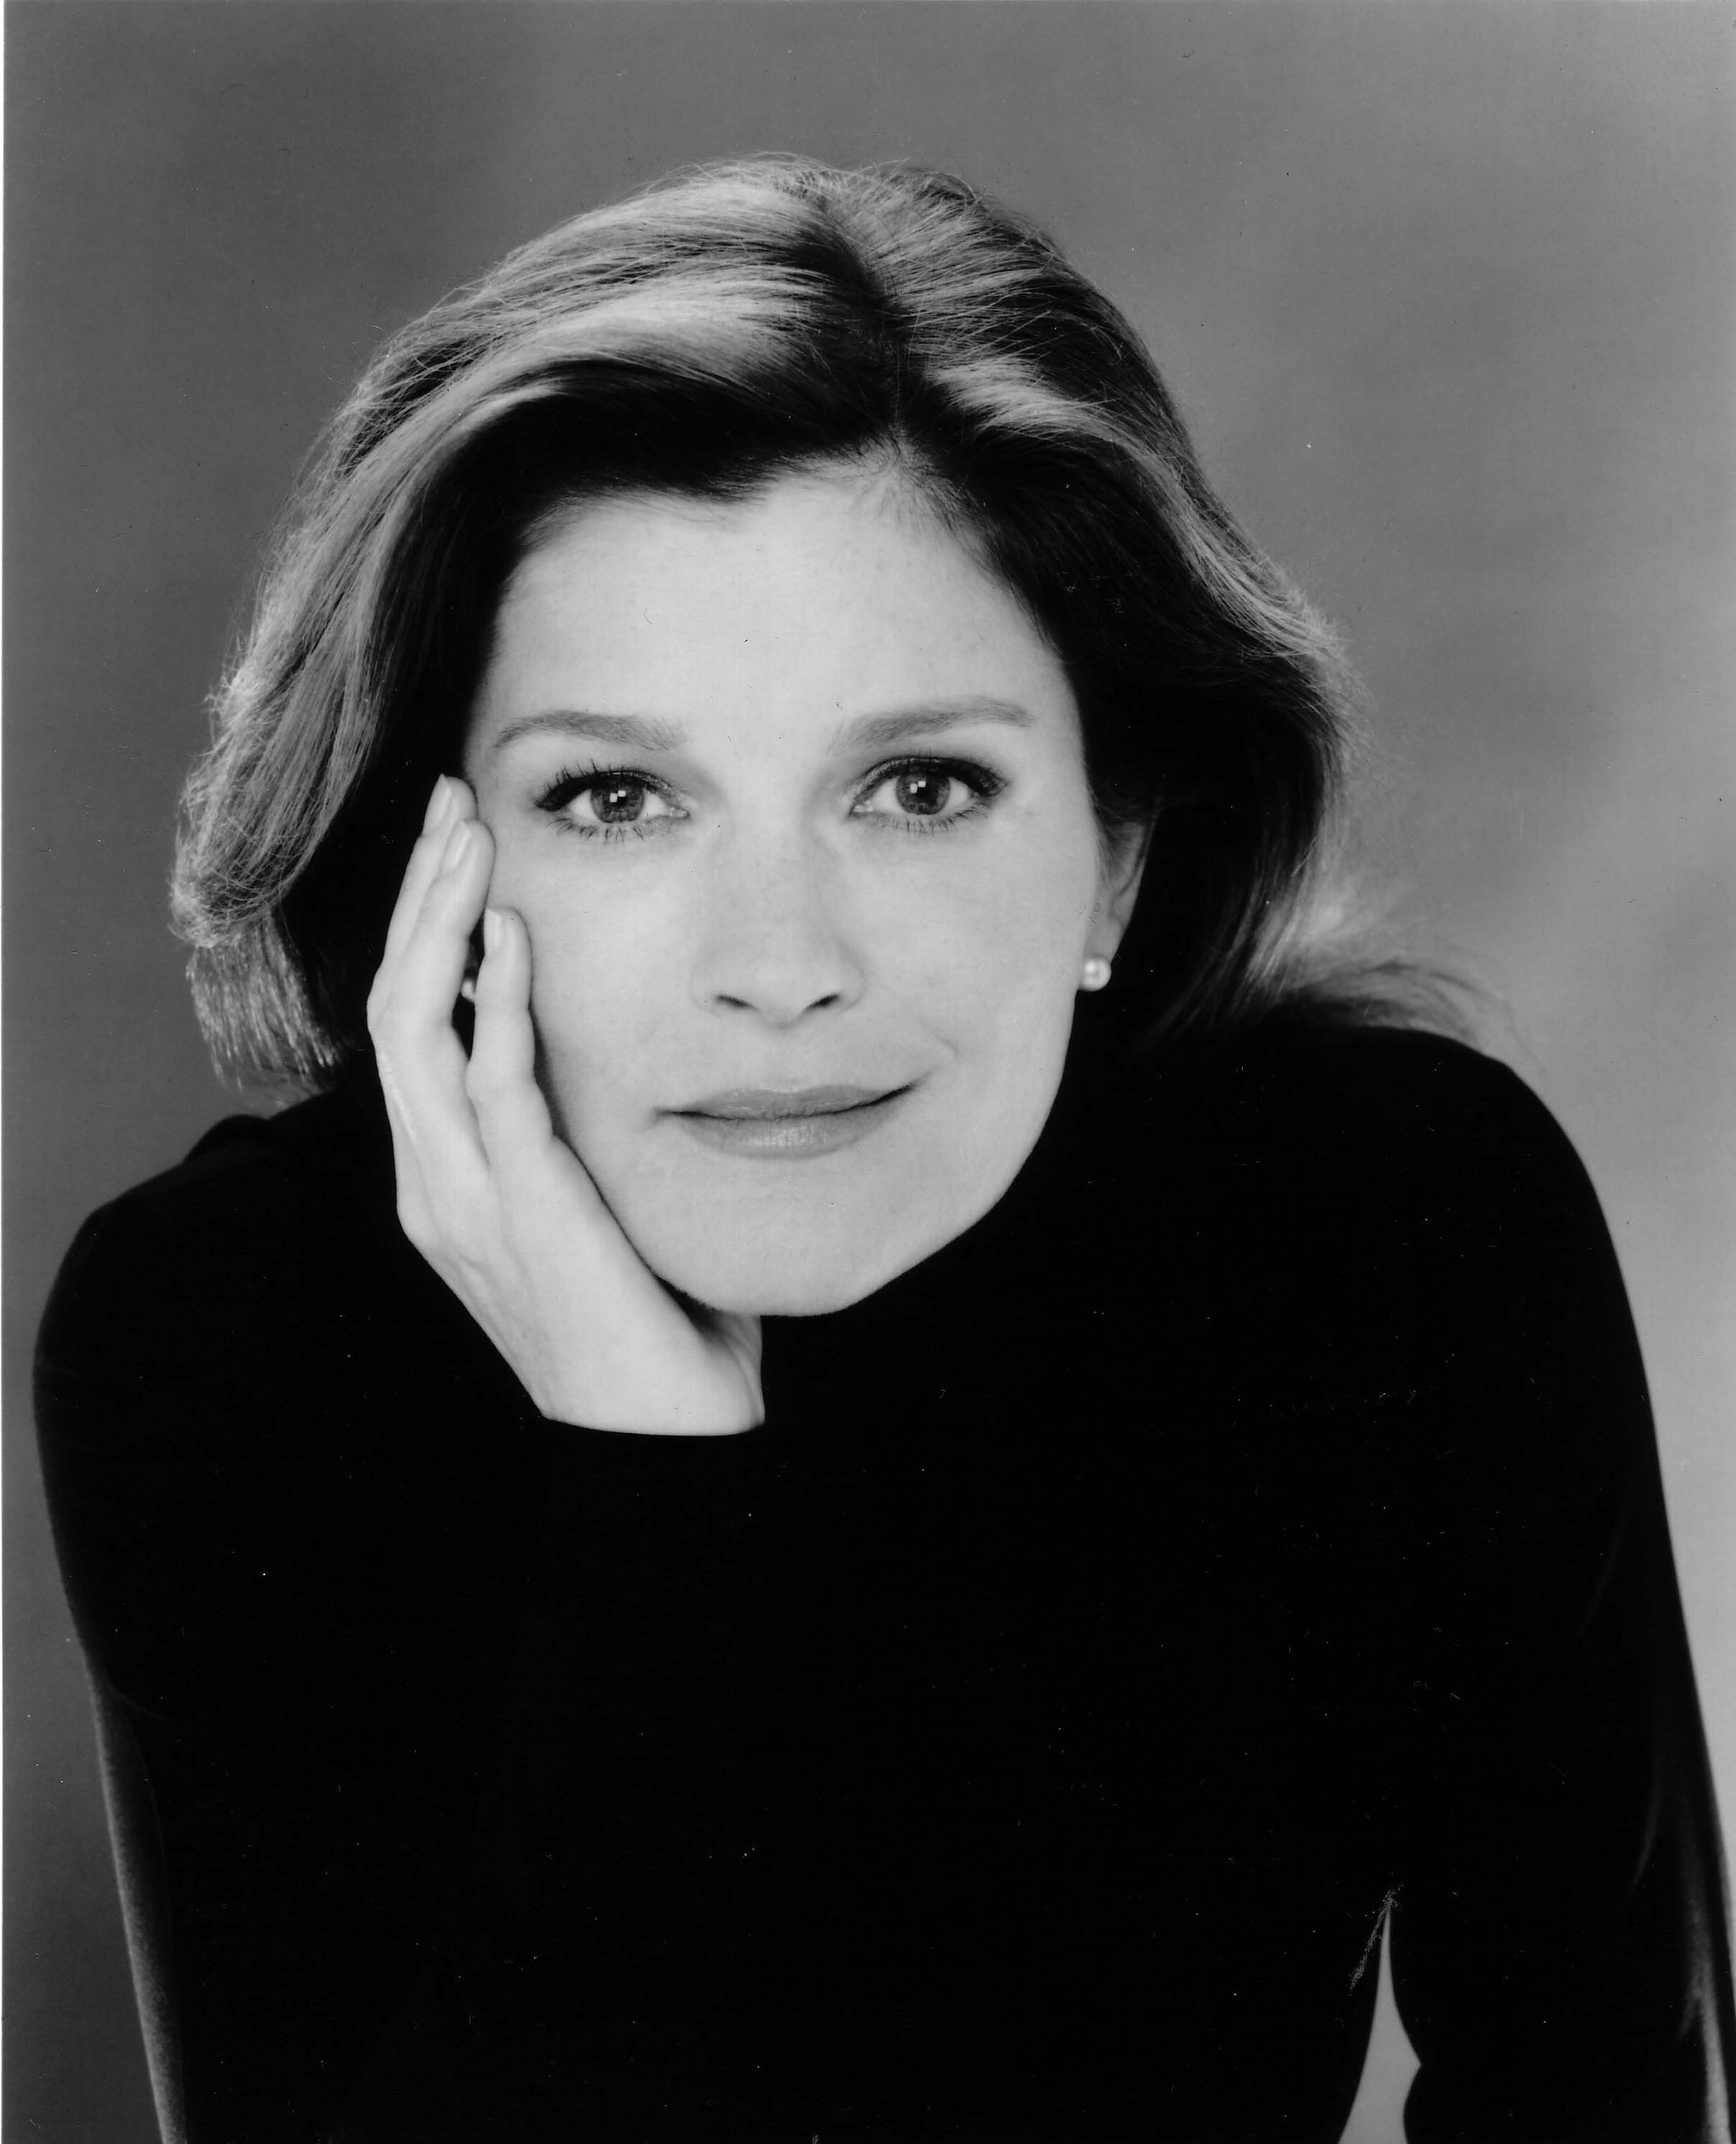 kate mulgrew instagram